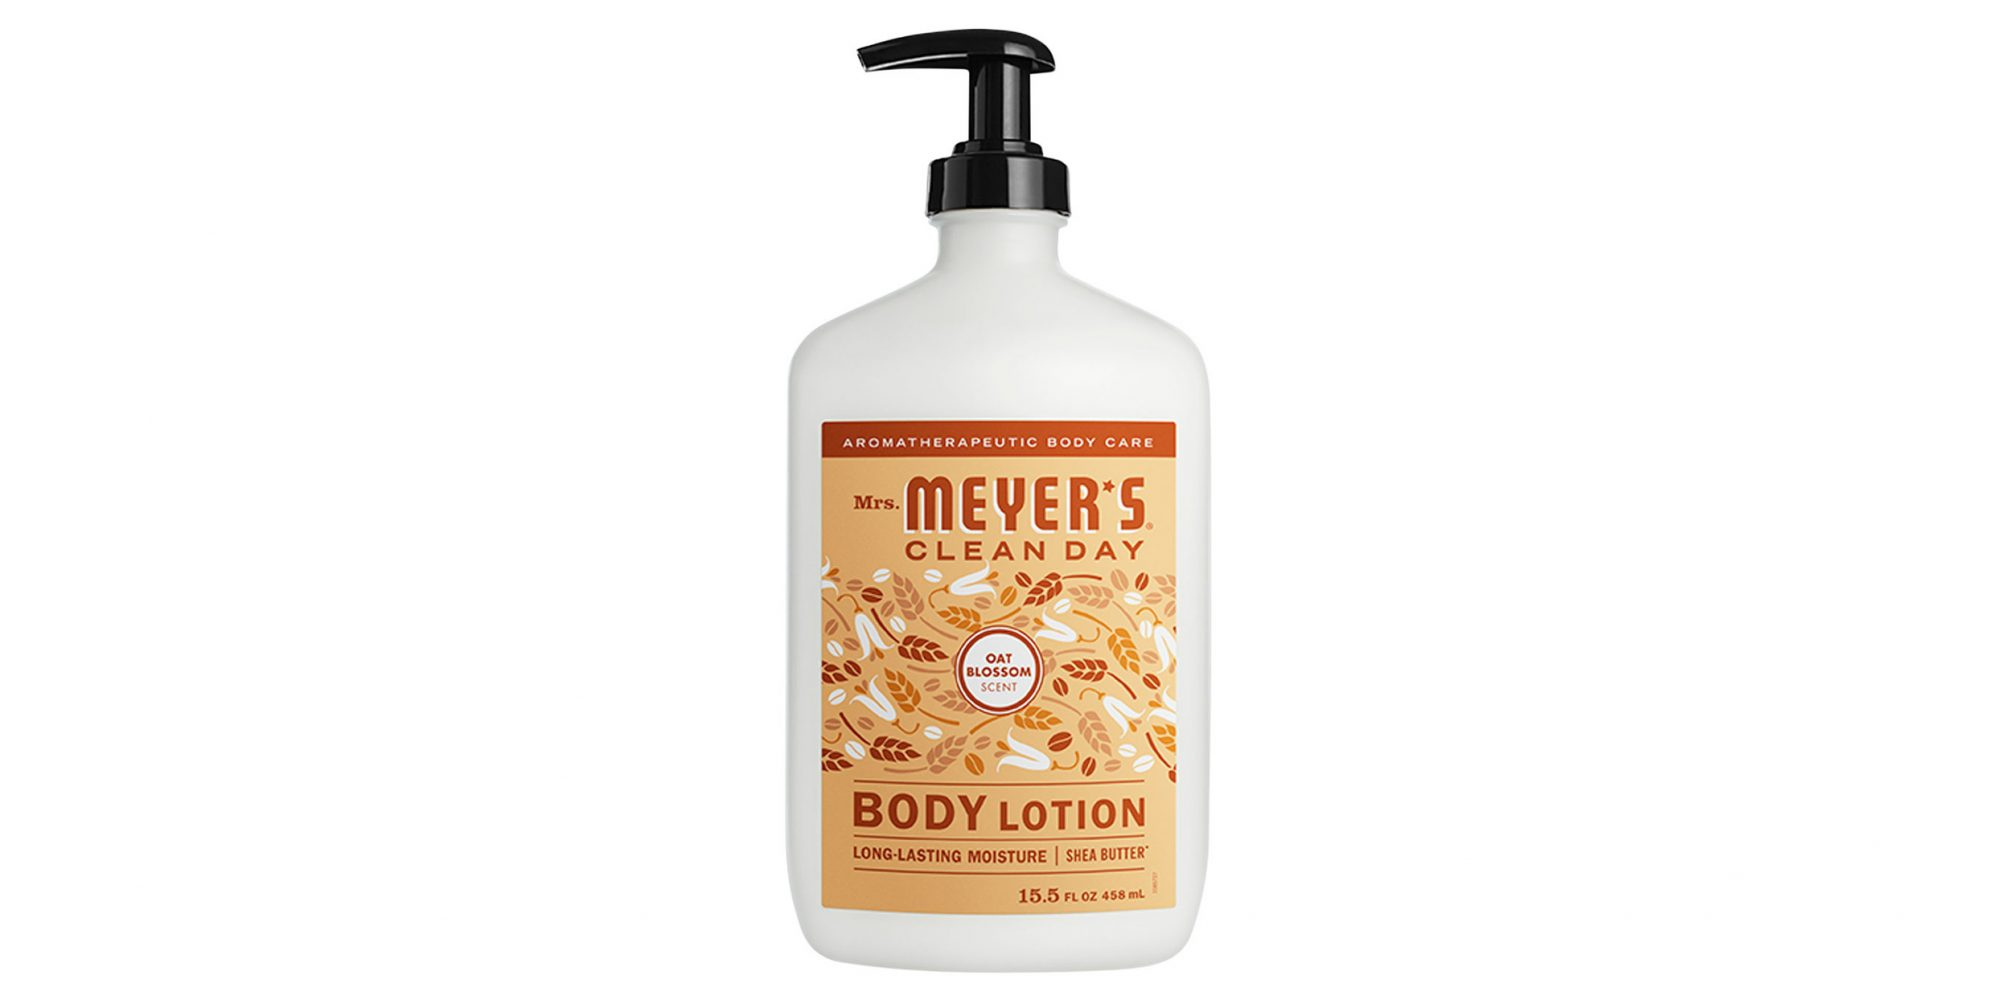 Mrs. Meyer's Clean Day Oat Blossom Body Lotion